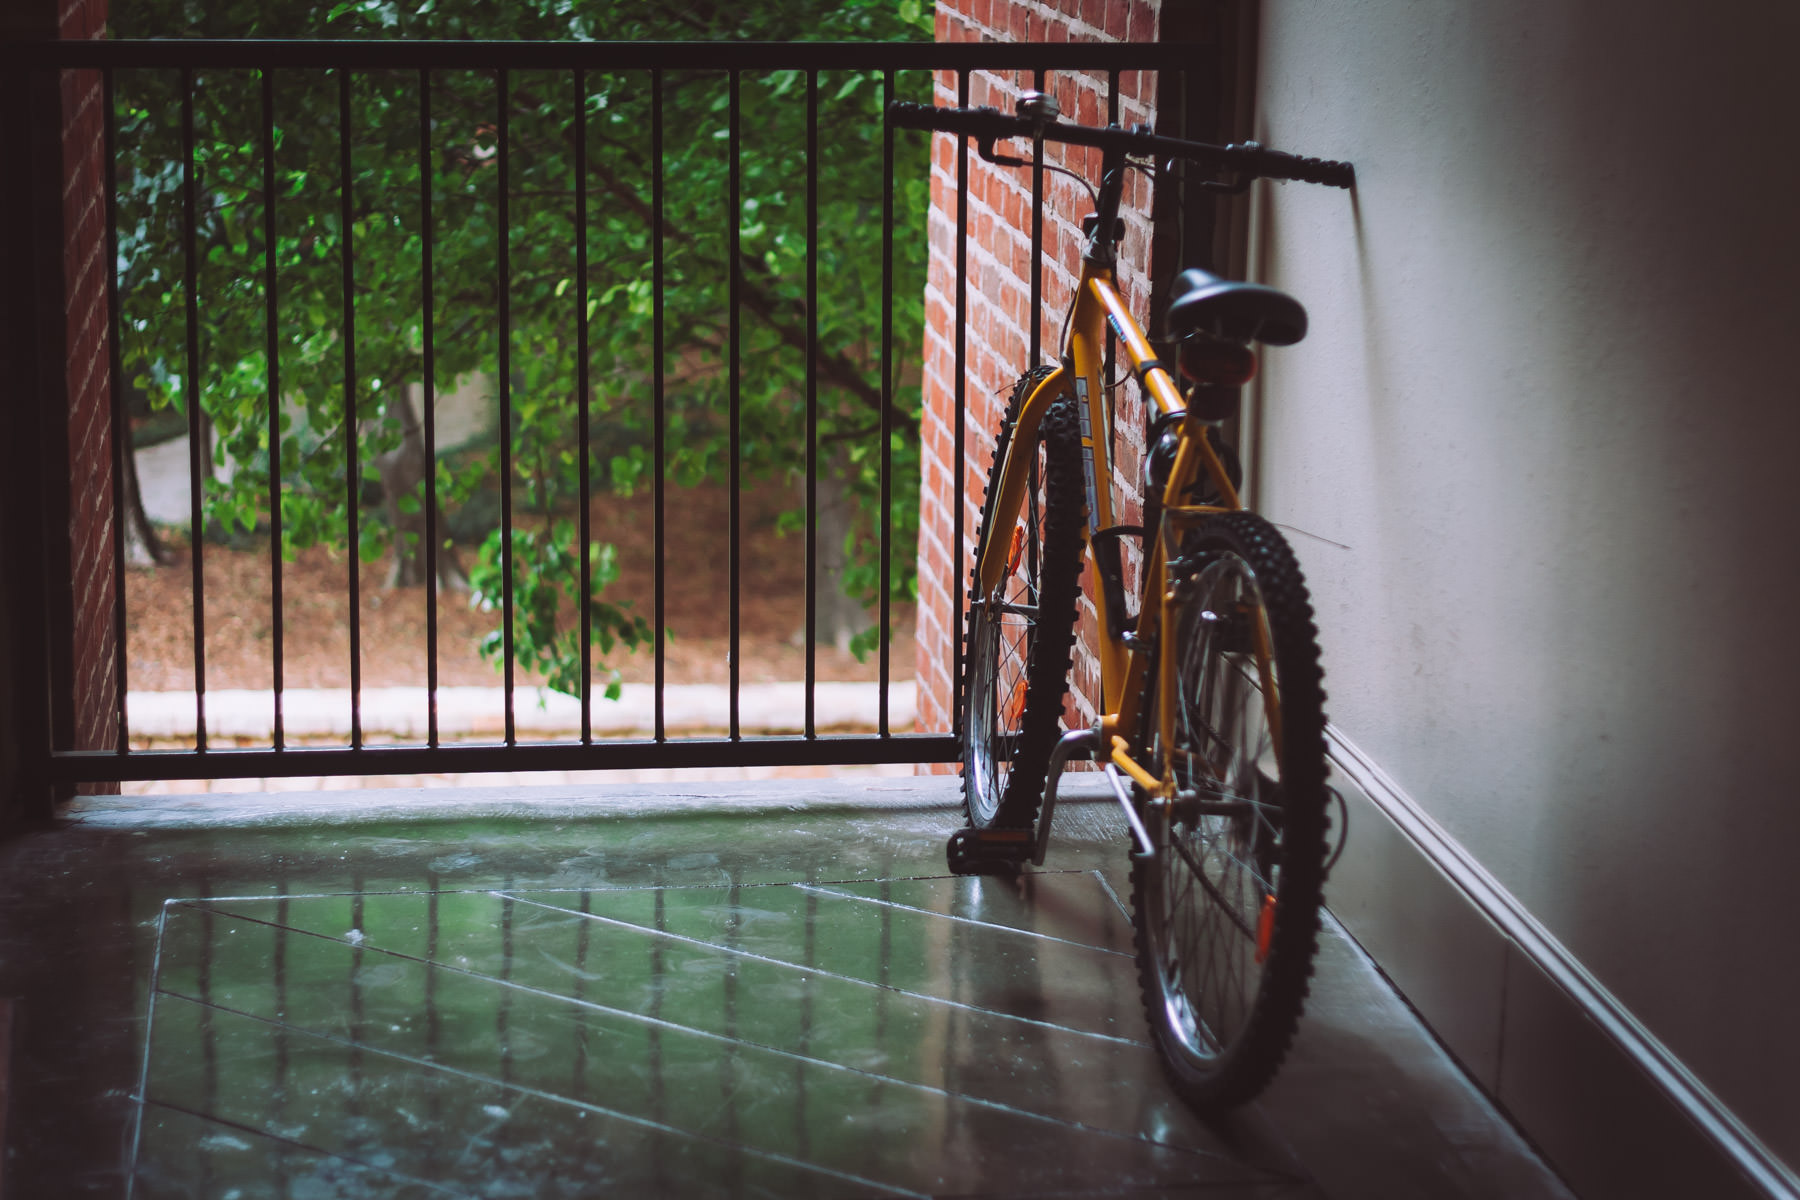 A bike overlooks Addison, Texas' Bosque Park from a second-story breezeway in an adjacent building.